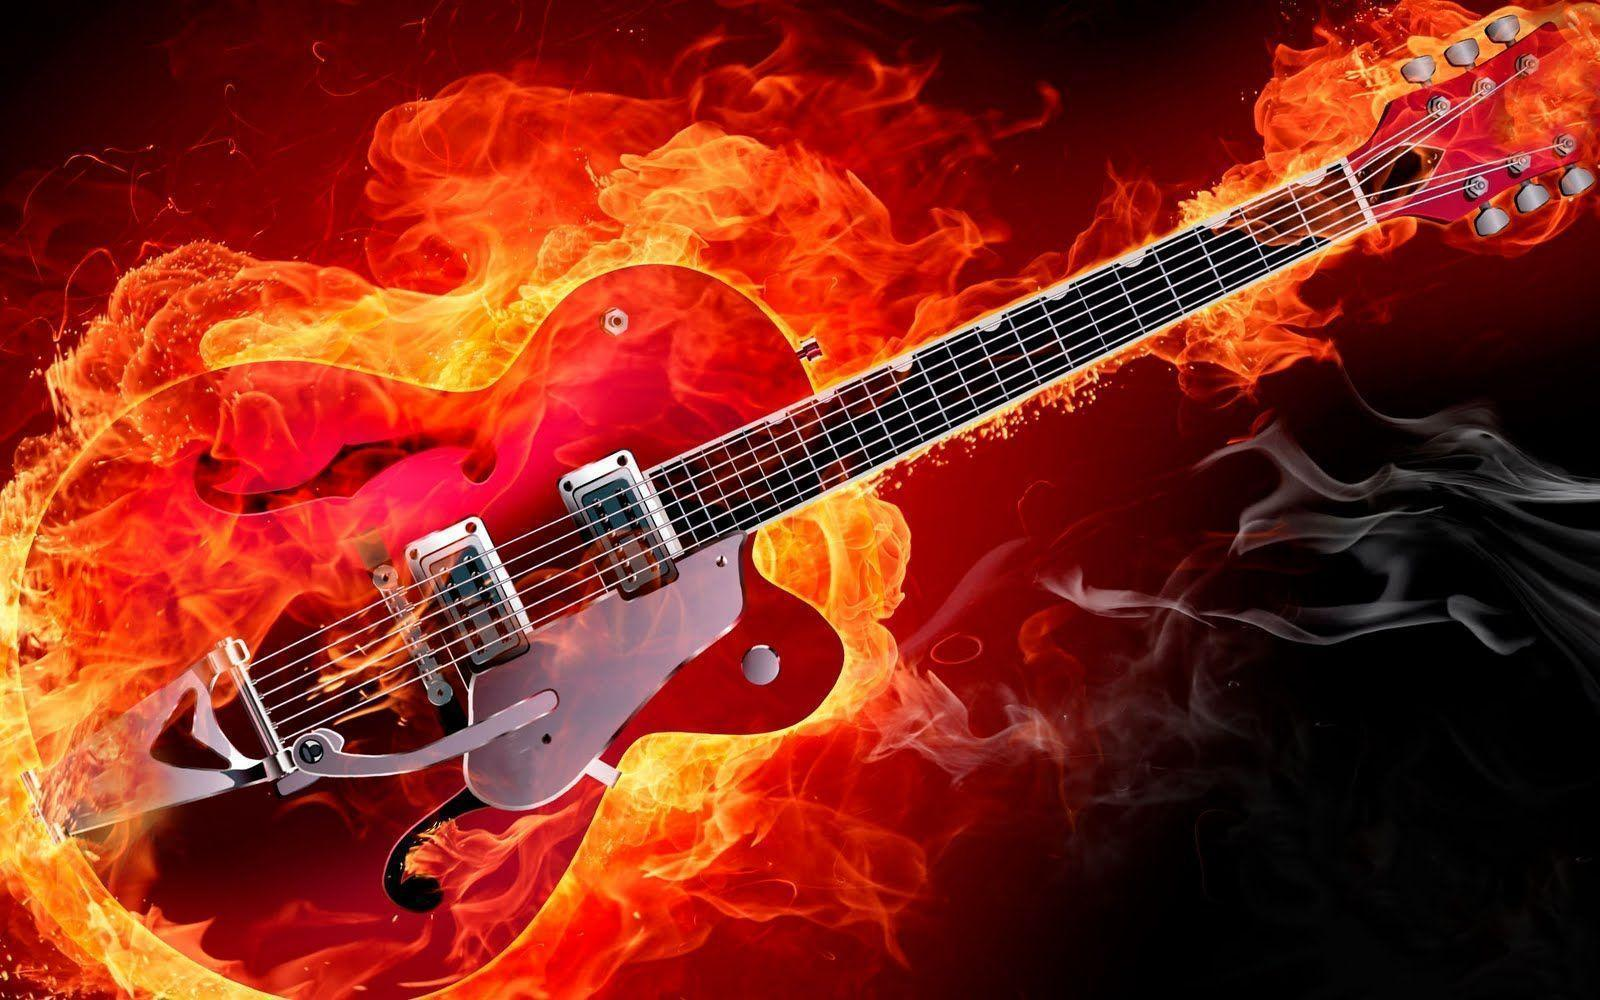 Love Wallpaper With Guitar : Electric Guitar Wallpapers - Wallpaper cave